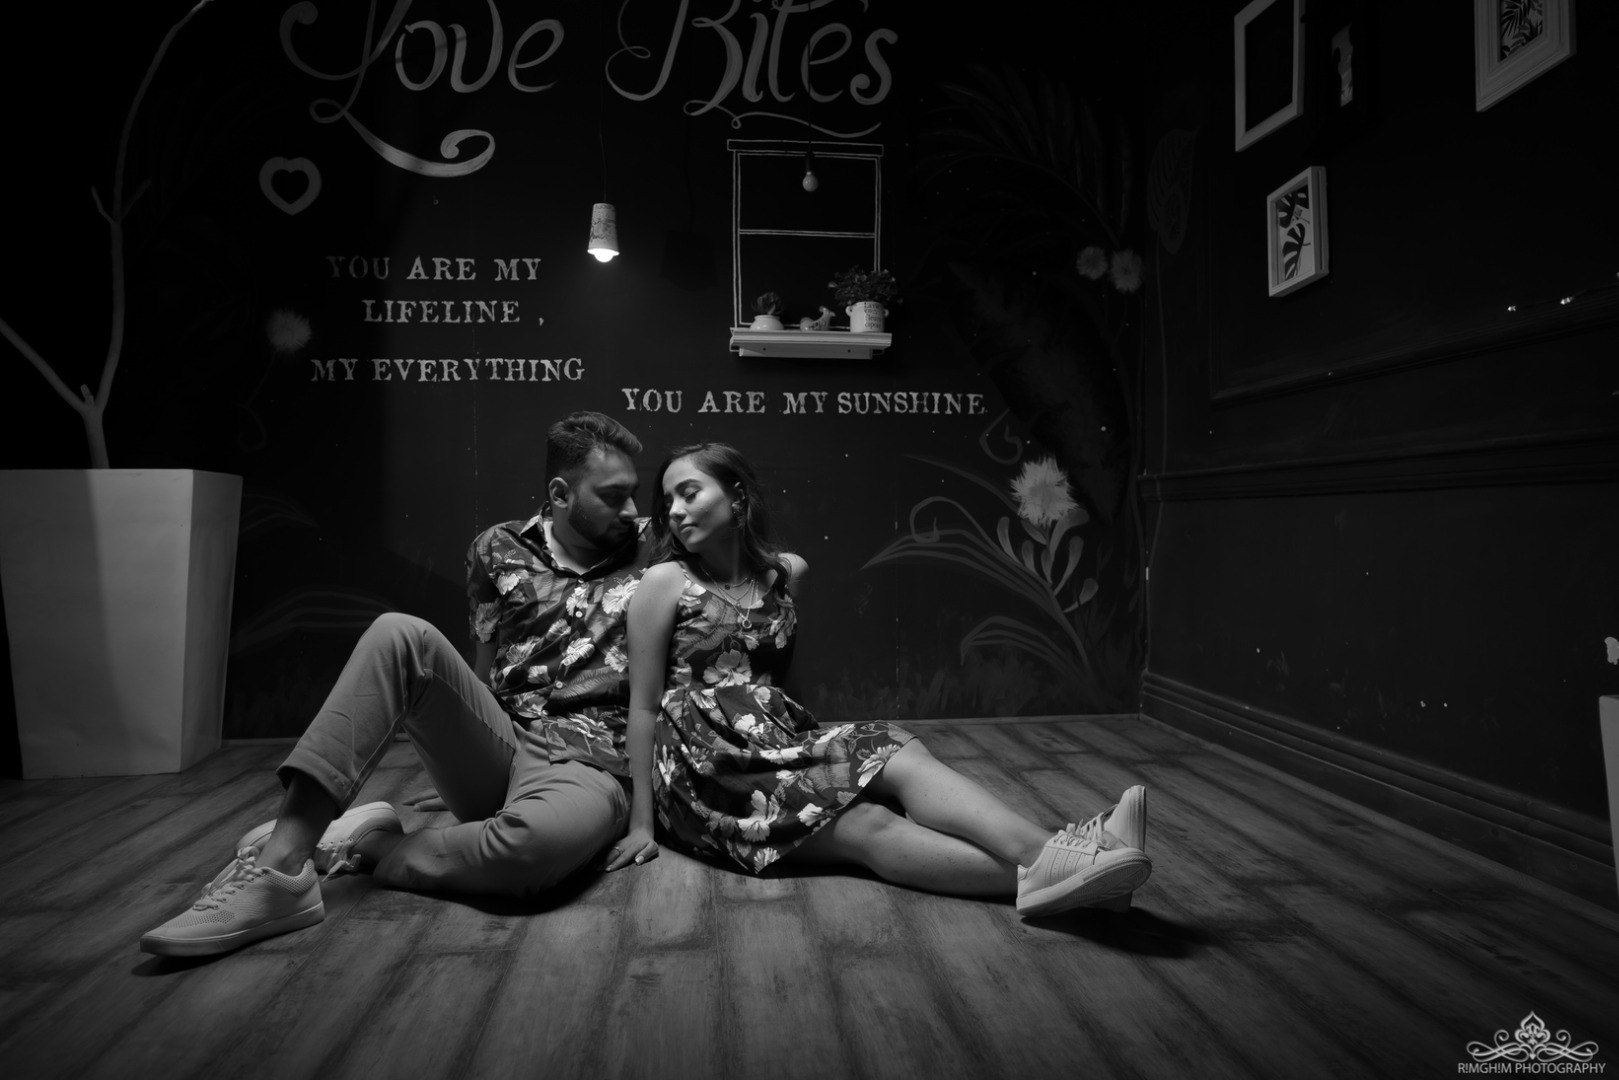 Aesthetic Black and White Pre-wedding Portraits